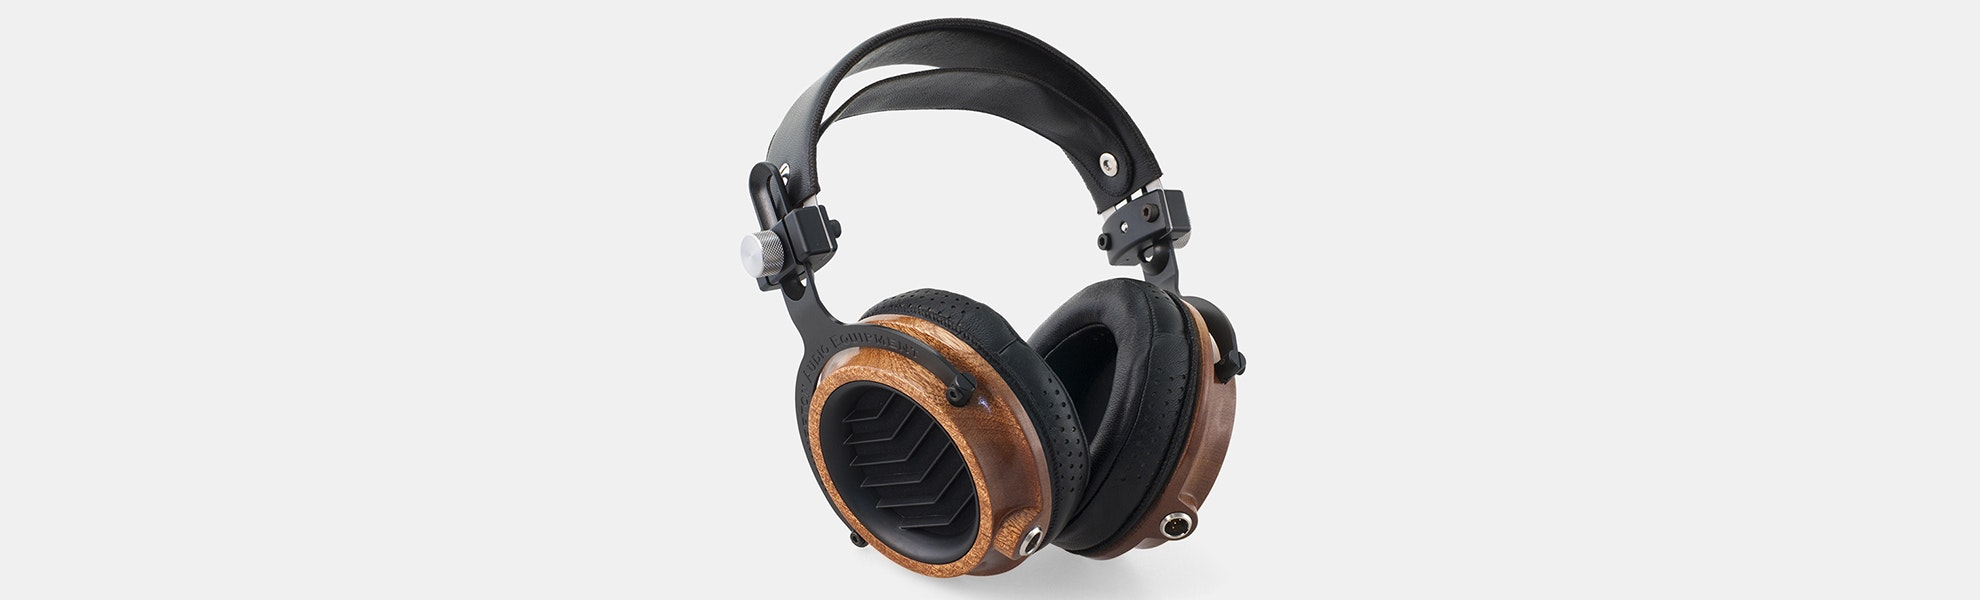 Kennerton Odin Sapele Headphones